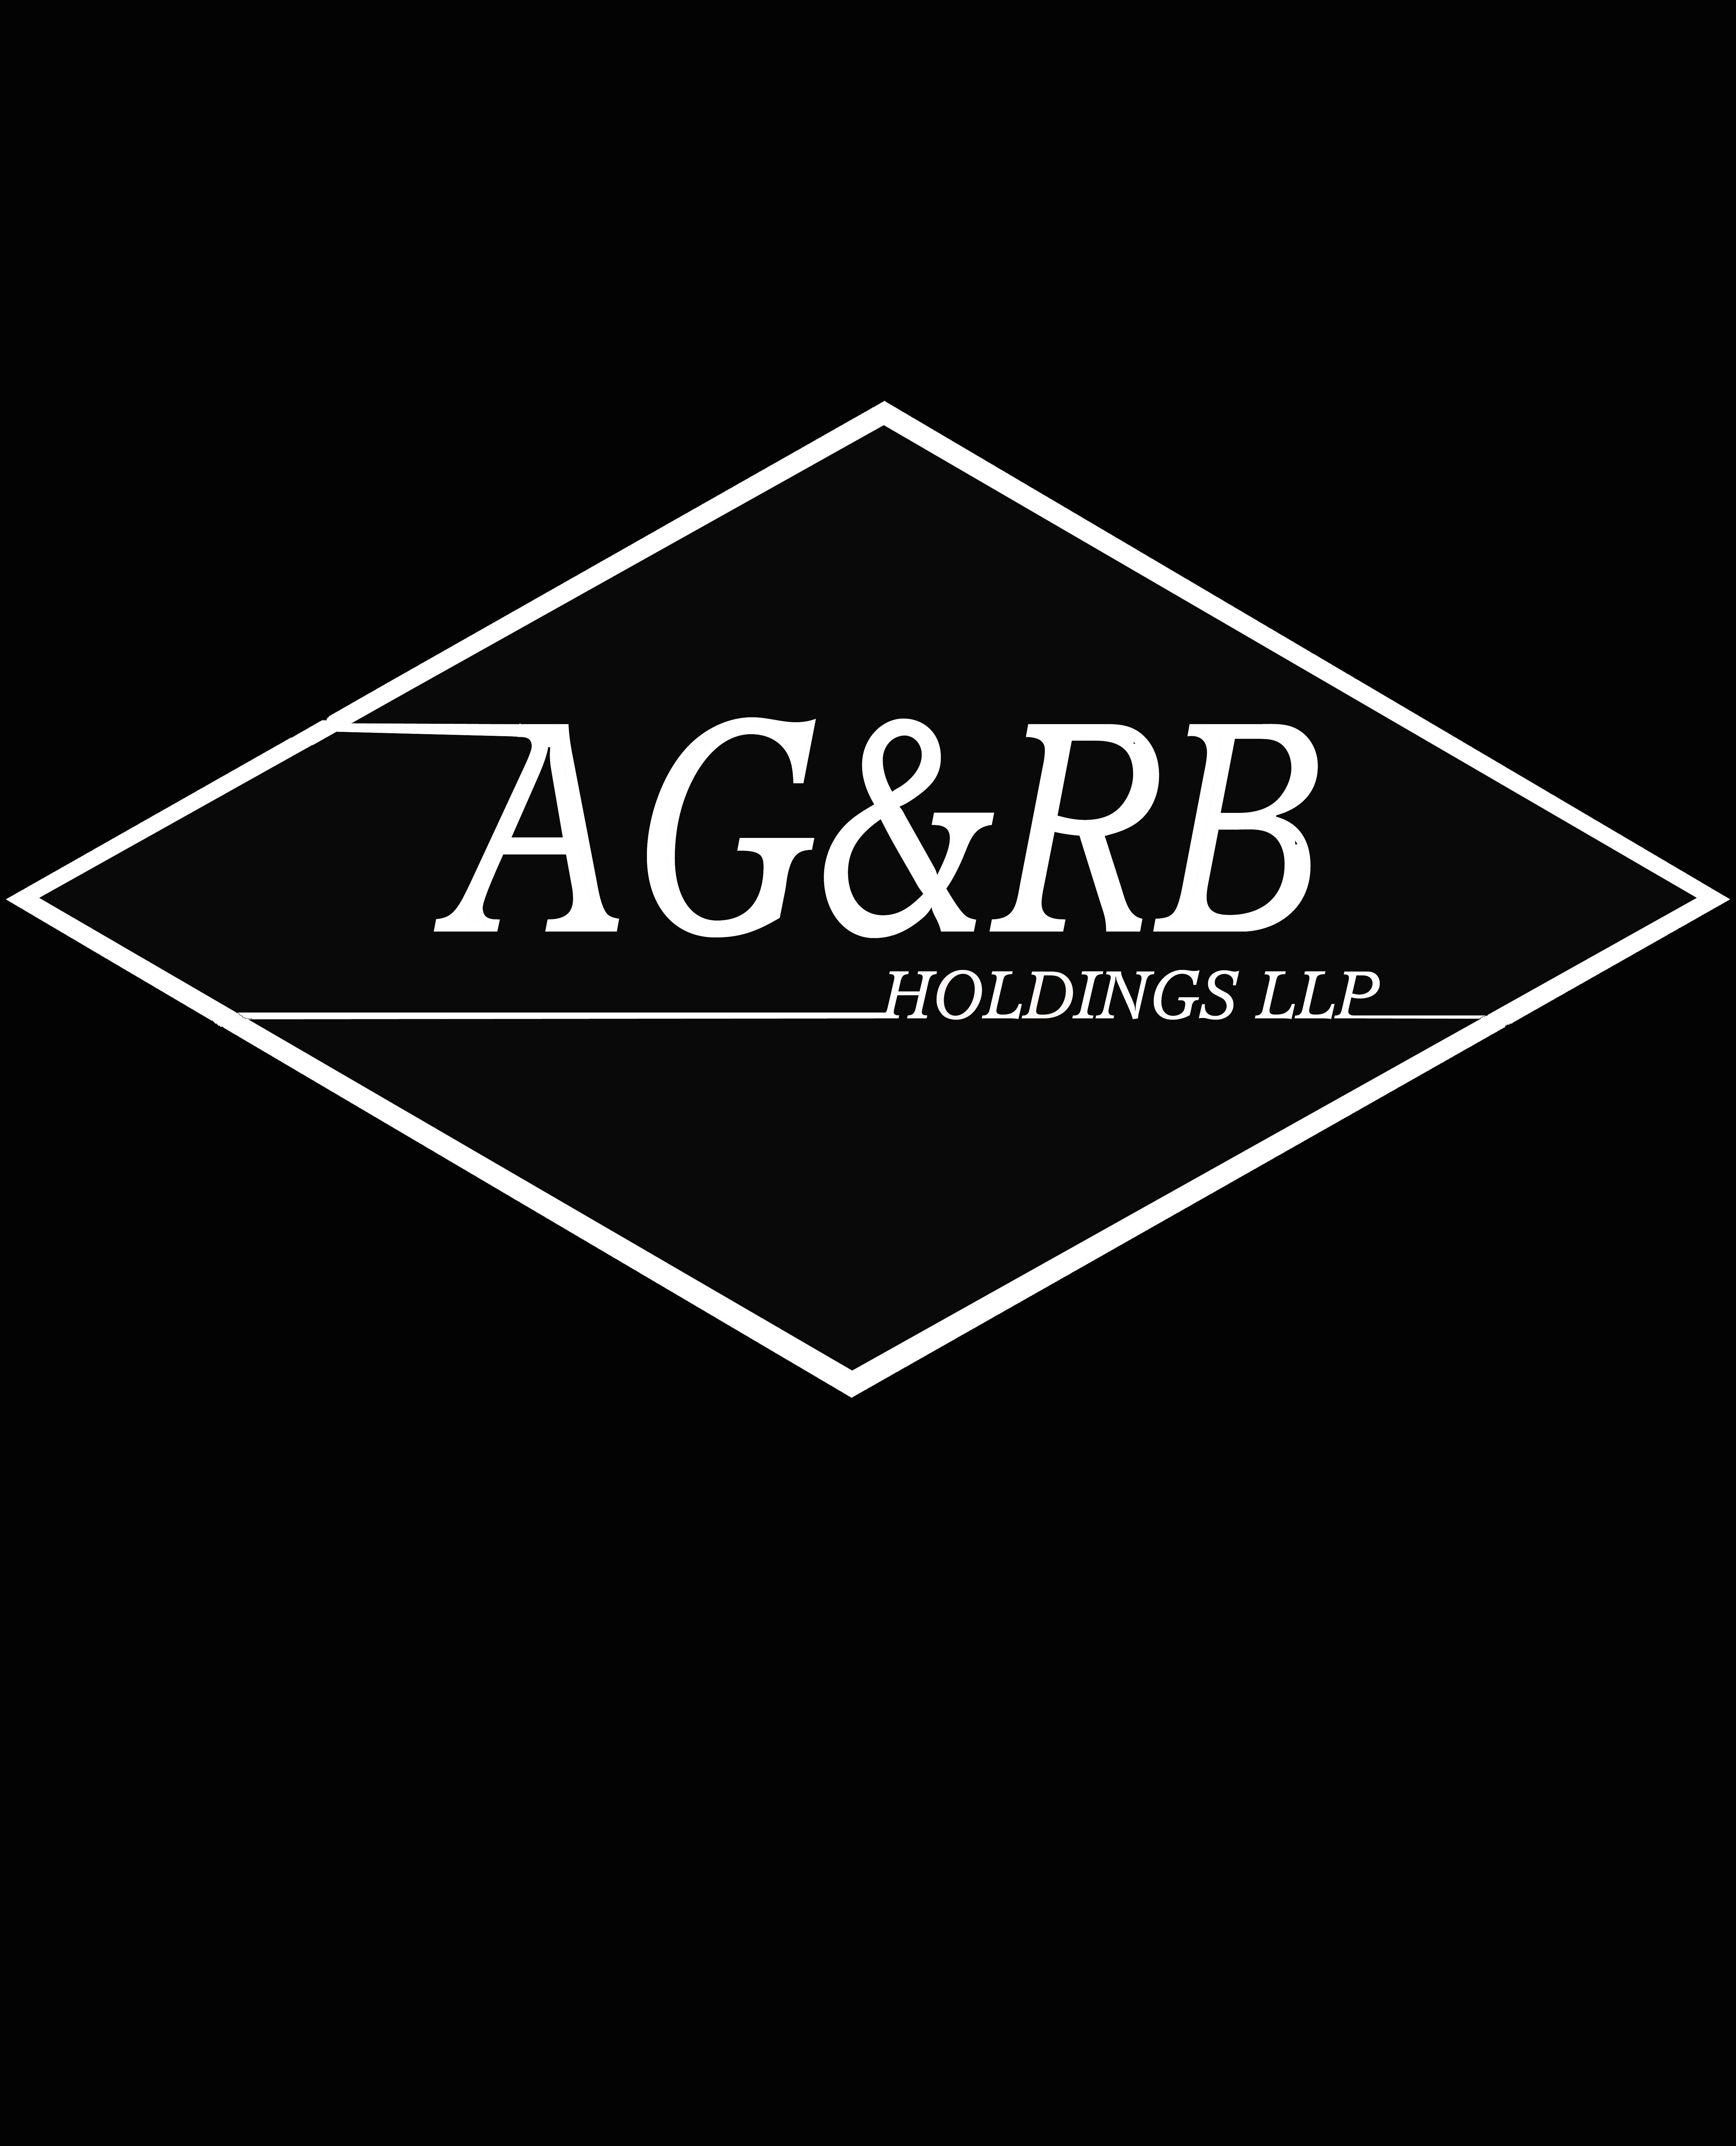 Ag investments llc maryland utila for non-diversified closed-end management investment company